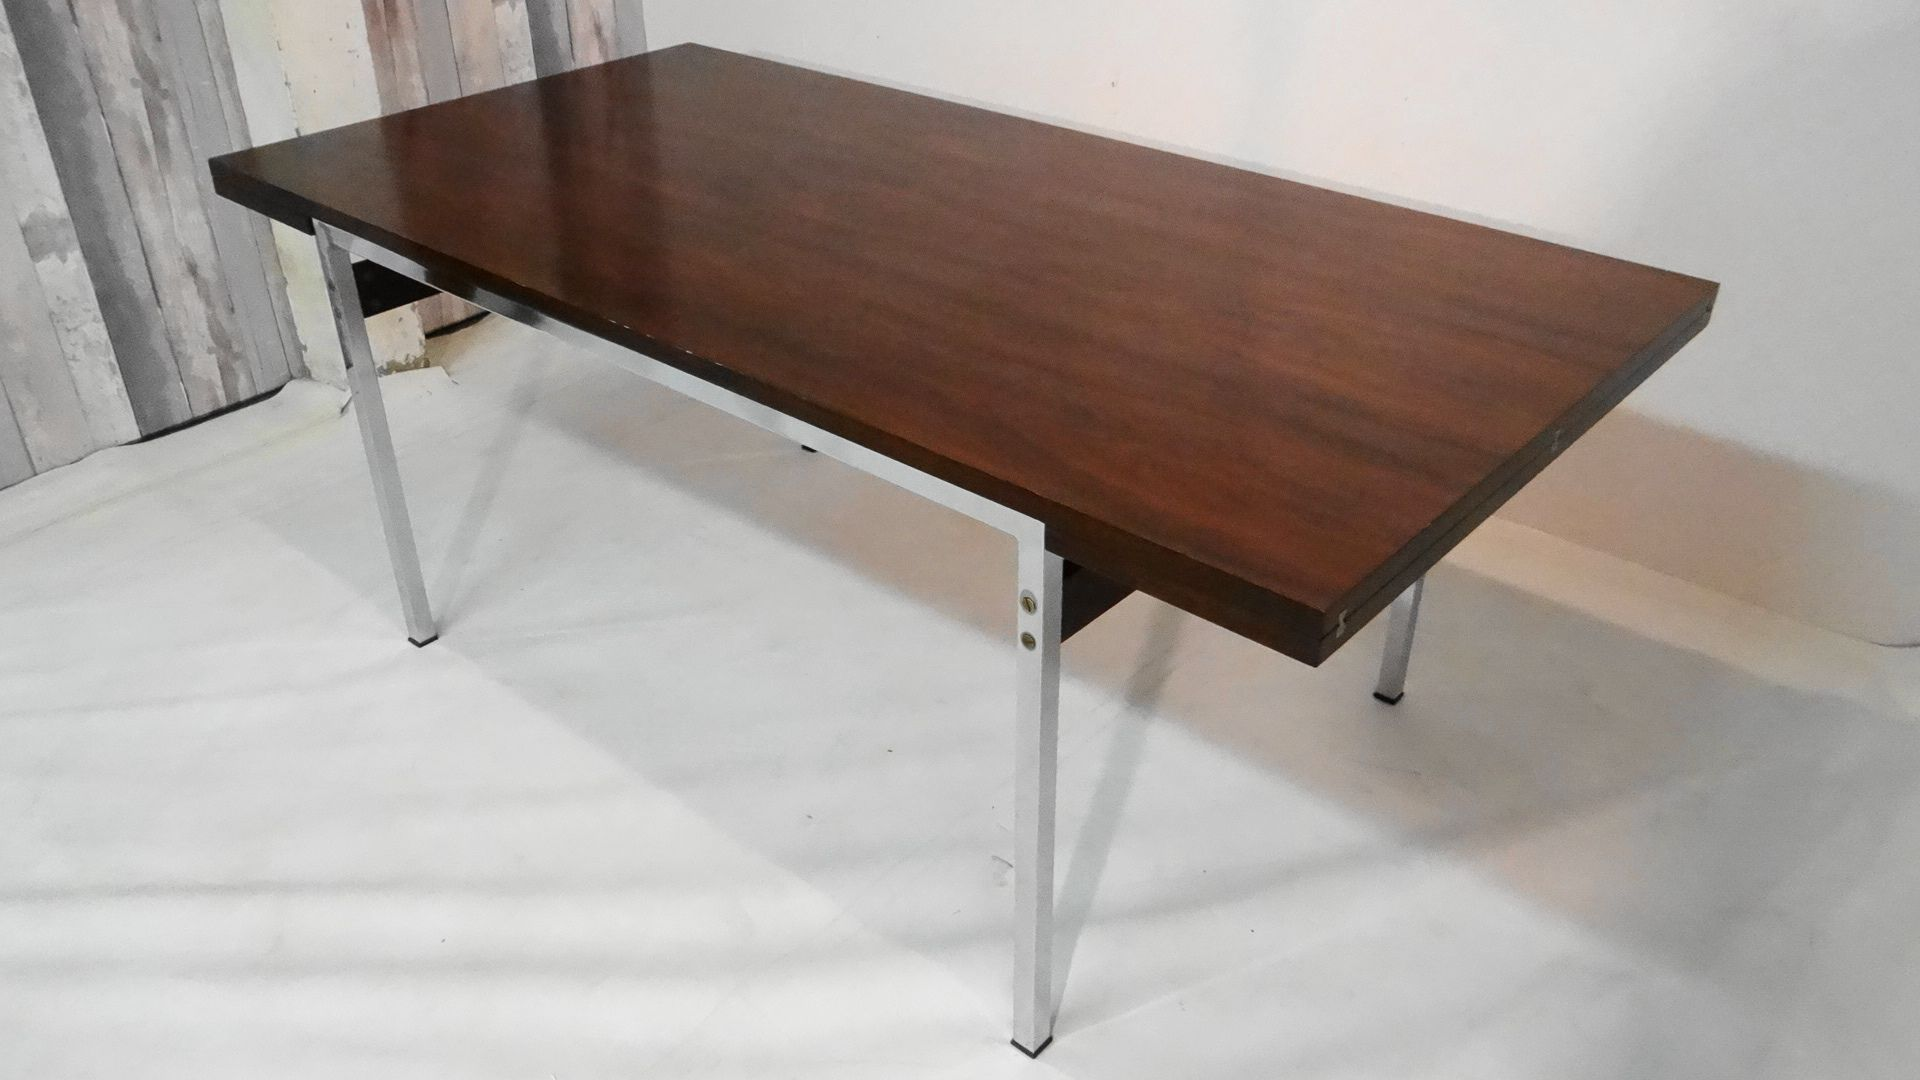 Vintage Extendable Dining Table Vintage Extendable Dining Table By Alfred Hendrickx For Belform